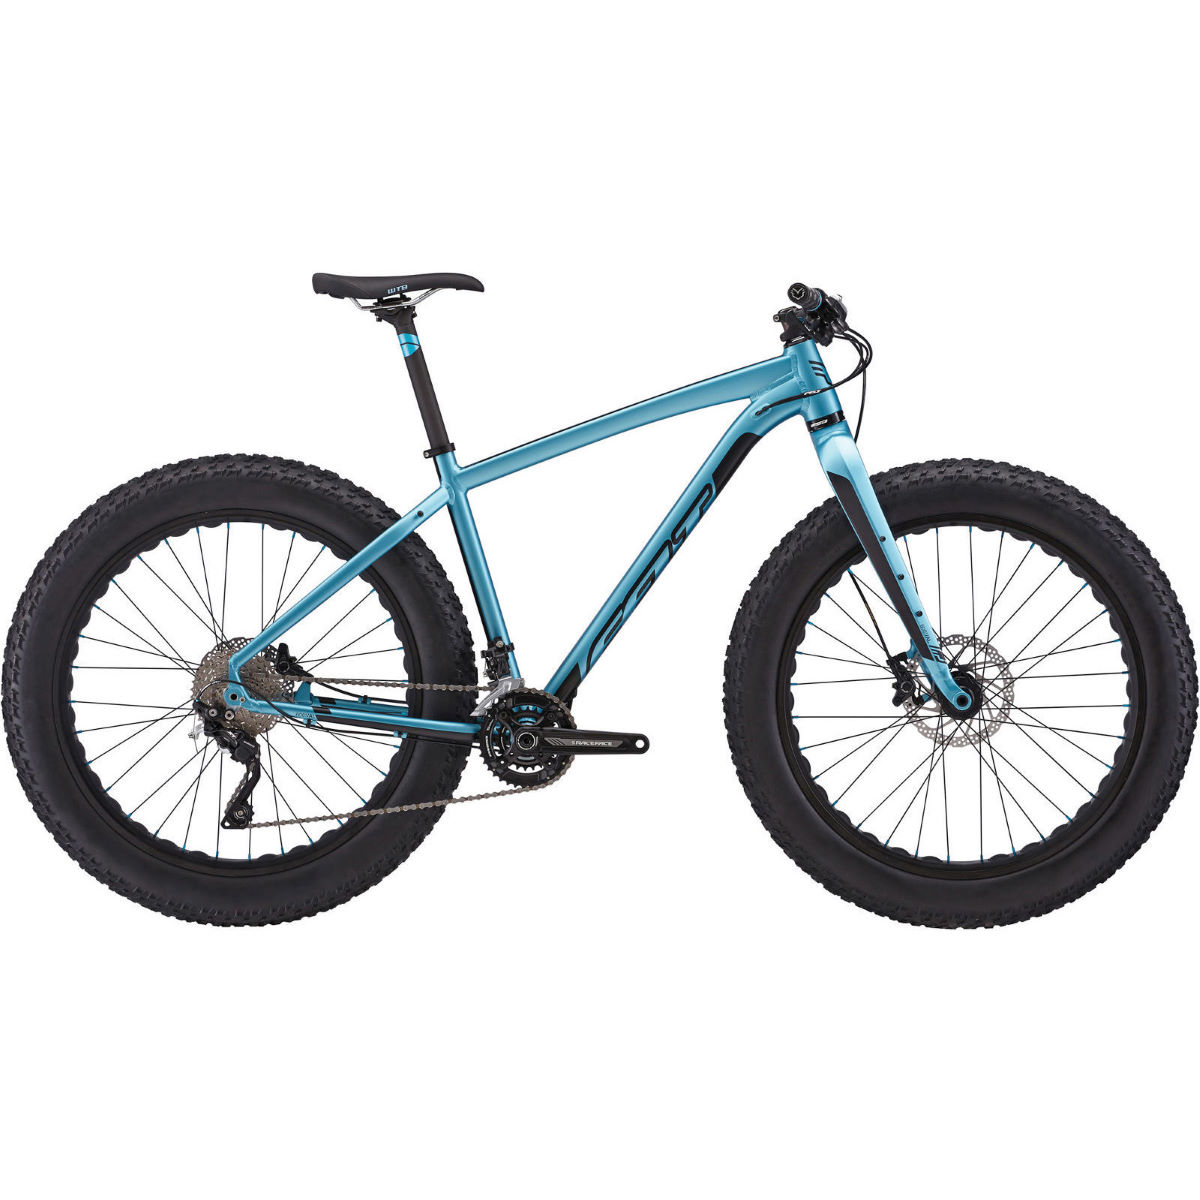 VTT Fat Bike Felt DD 30 (2016) - L Satin Steel Blue VTT semi-rigides